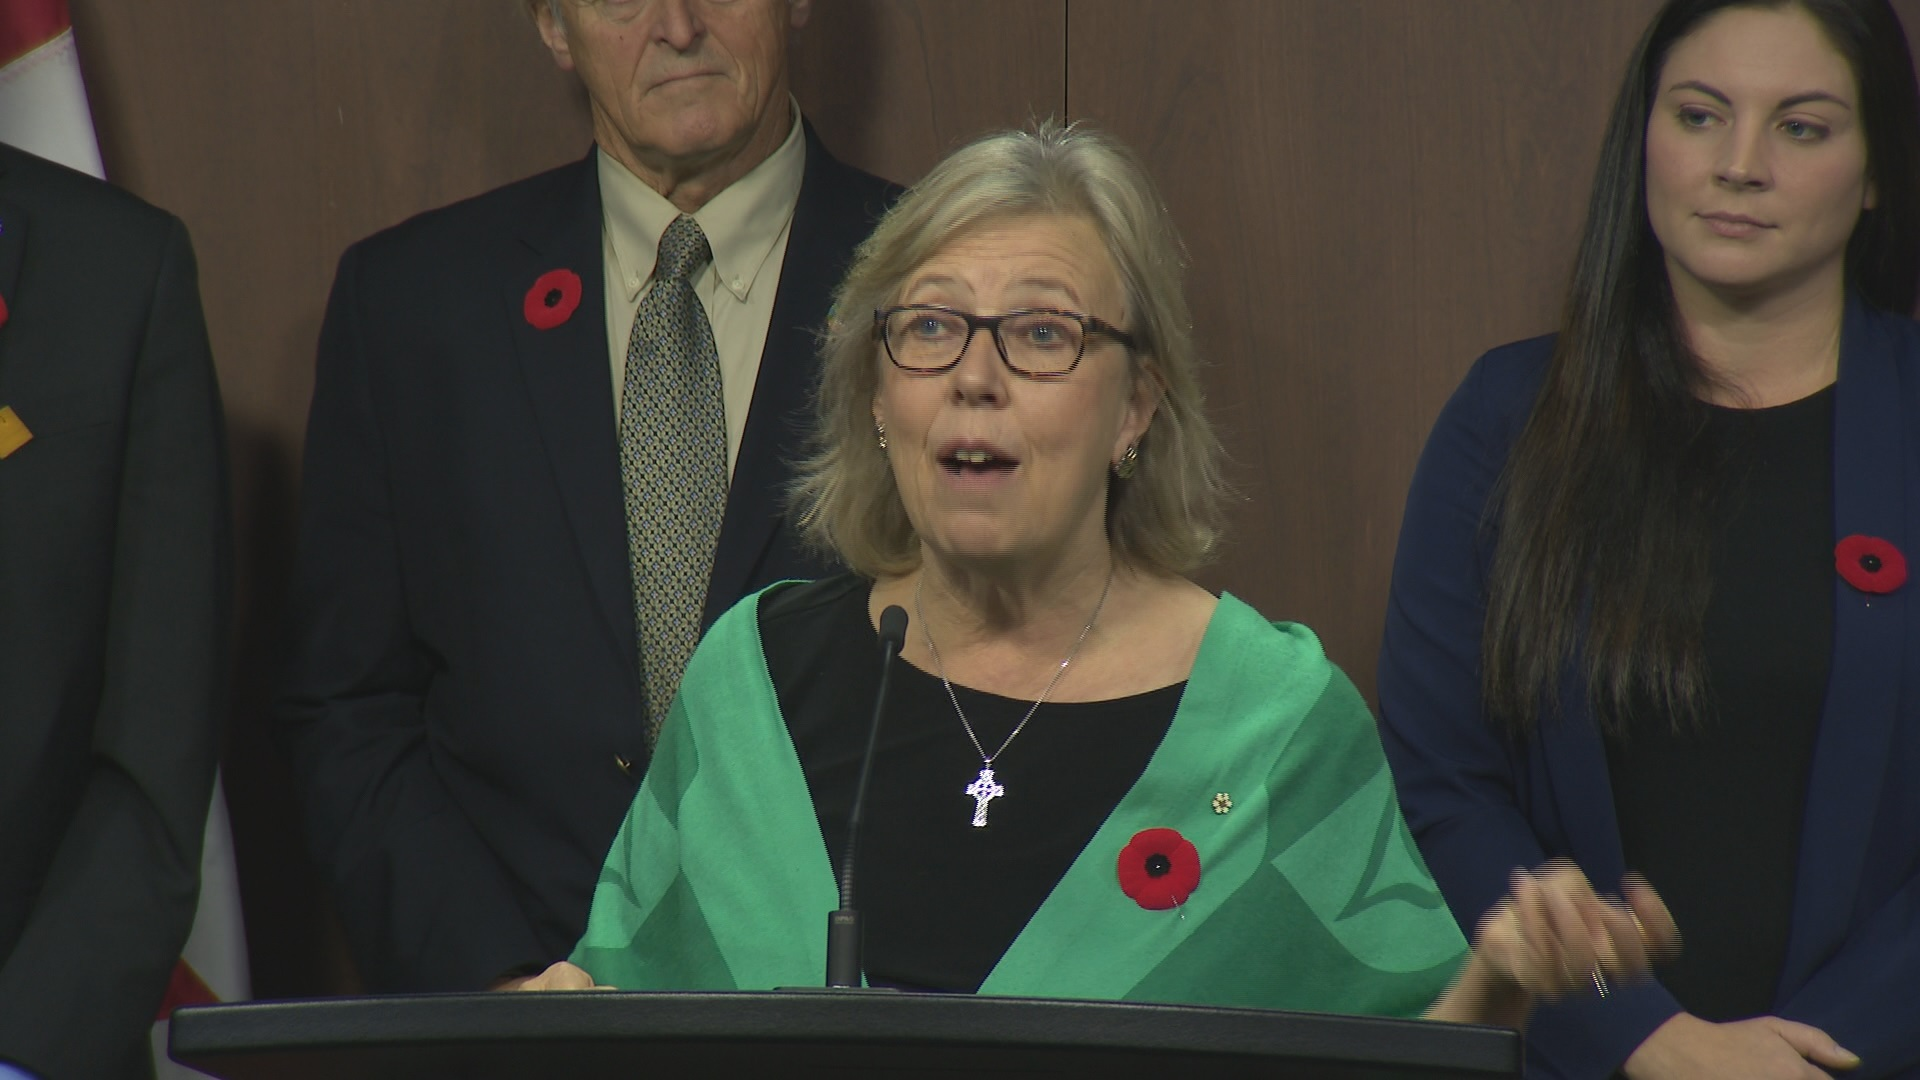 Elizabeth May steps down as Green Party leader